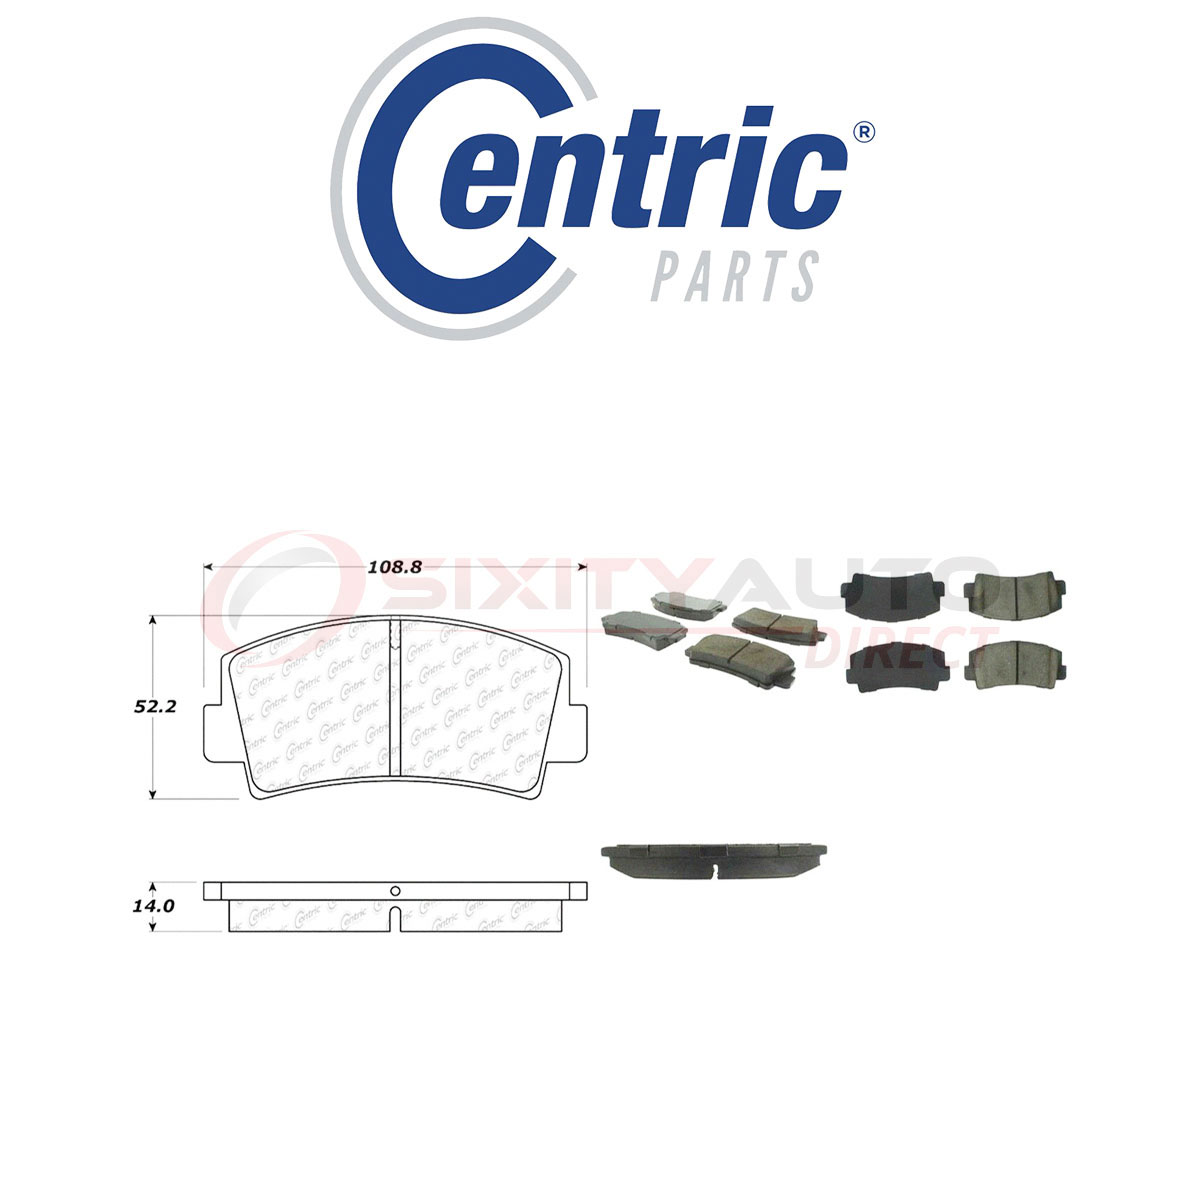 Centric Posi Quiet Ceramic Brake Pads w Shims for 2015-2018 Ford Mustang lk